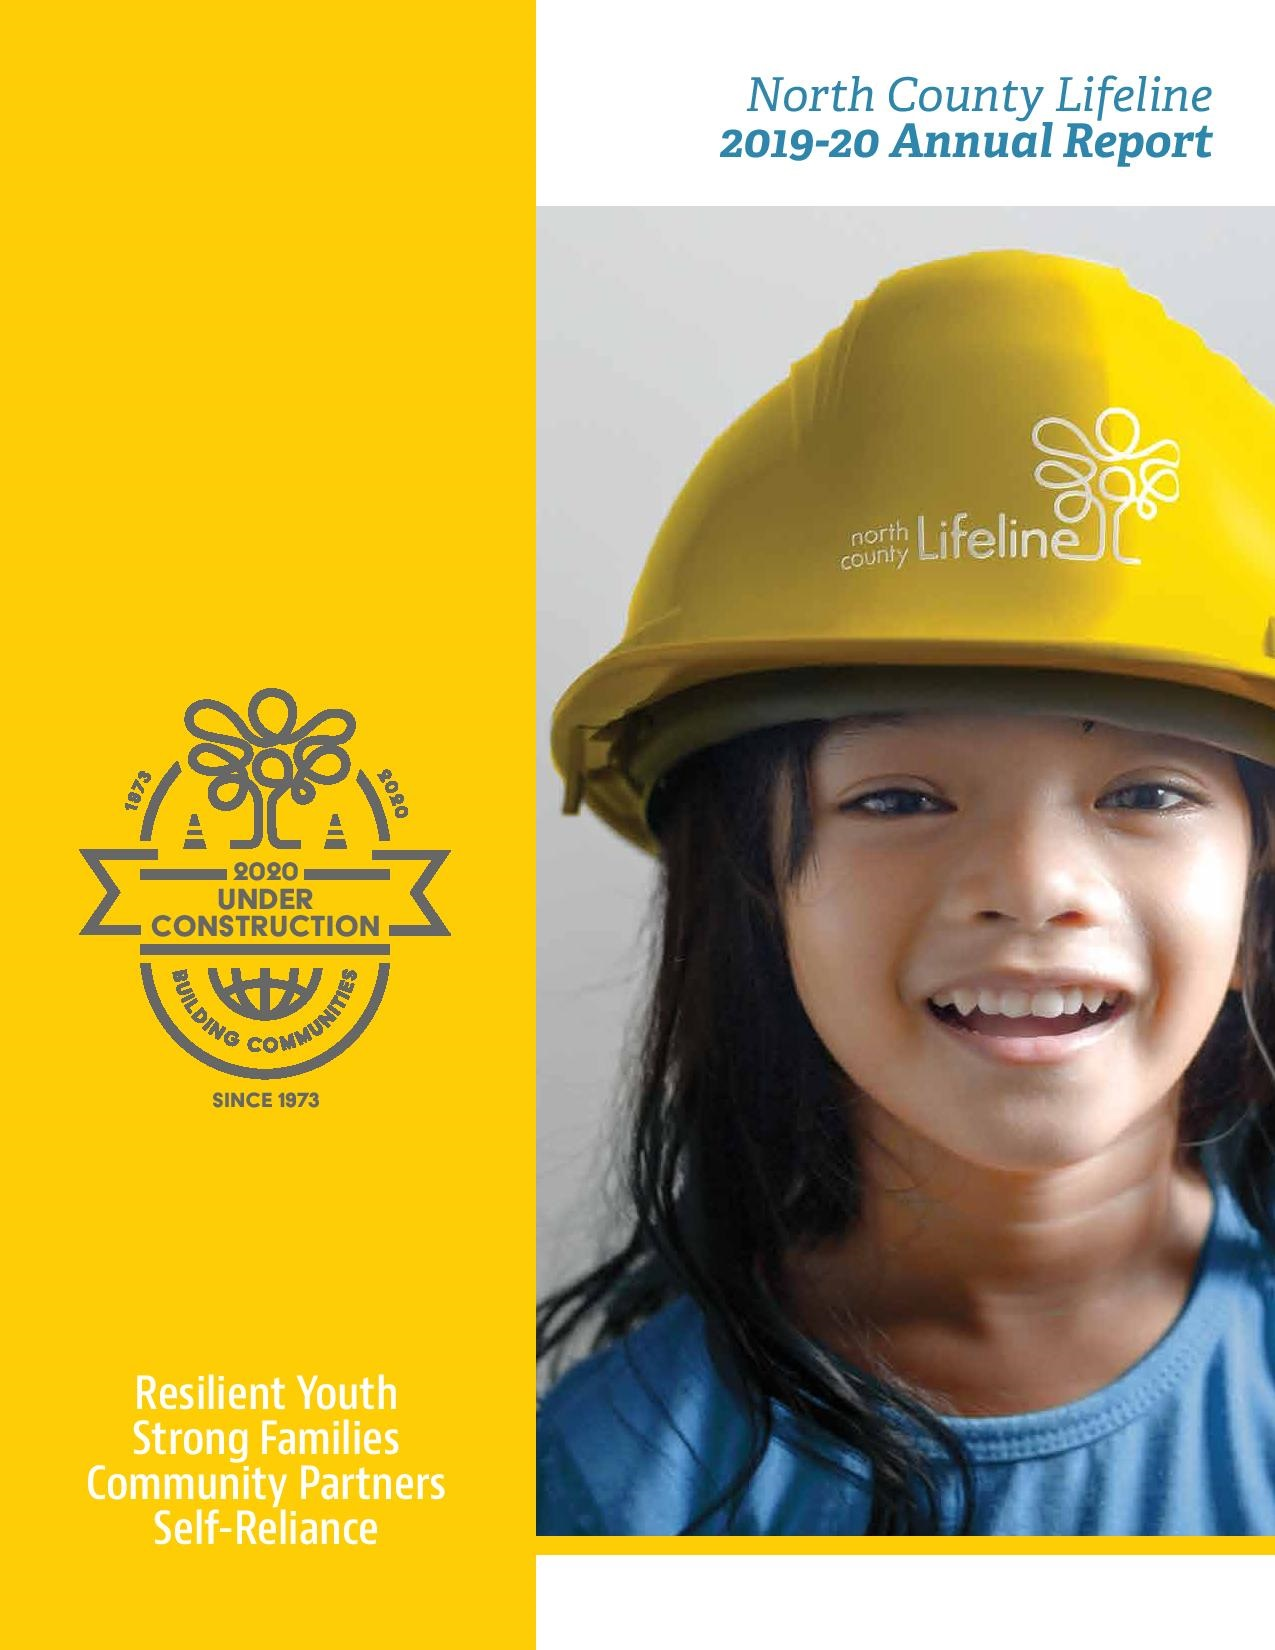 2020 Annual Report Cover.jpg